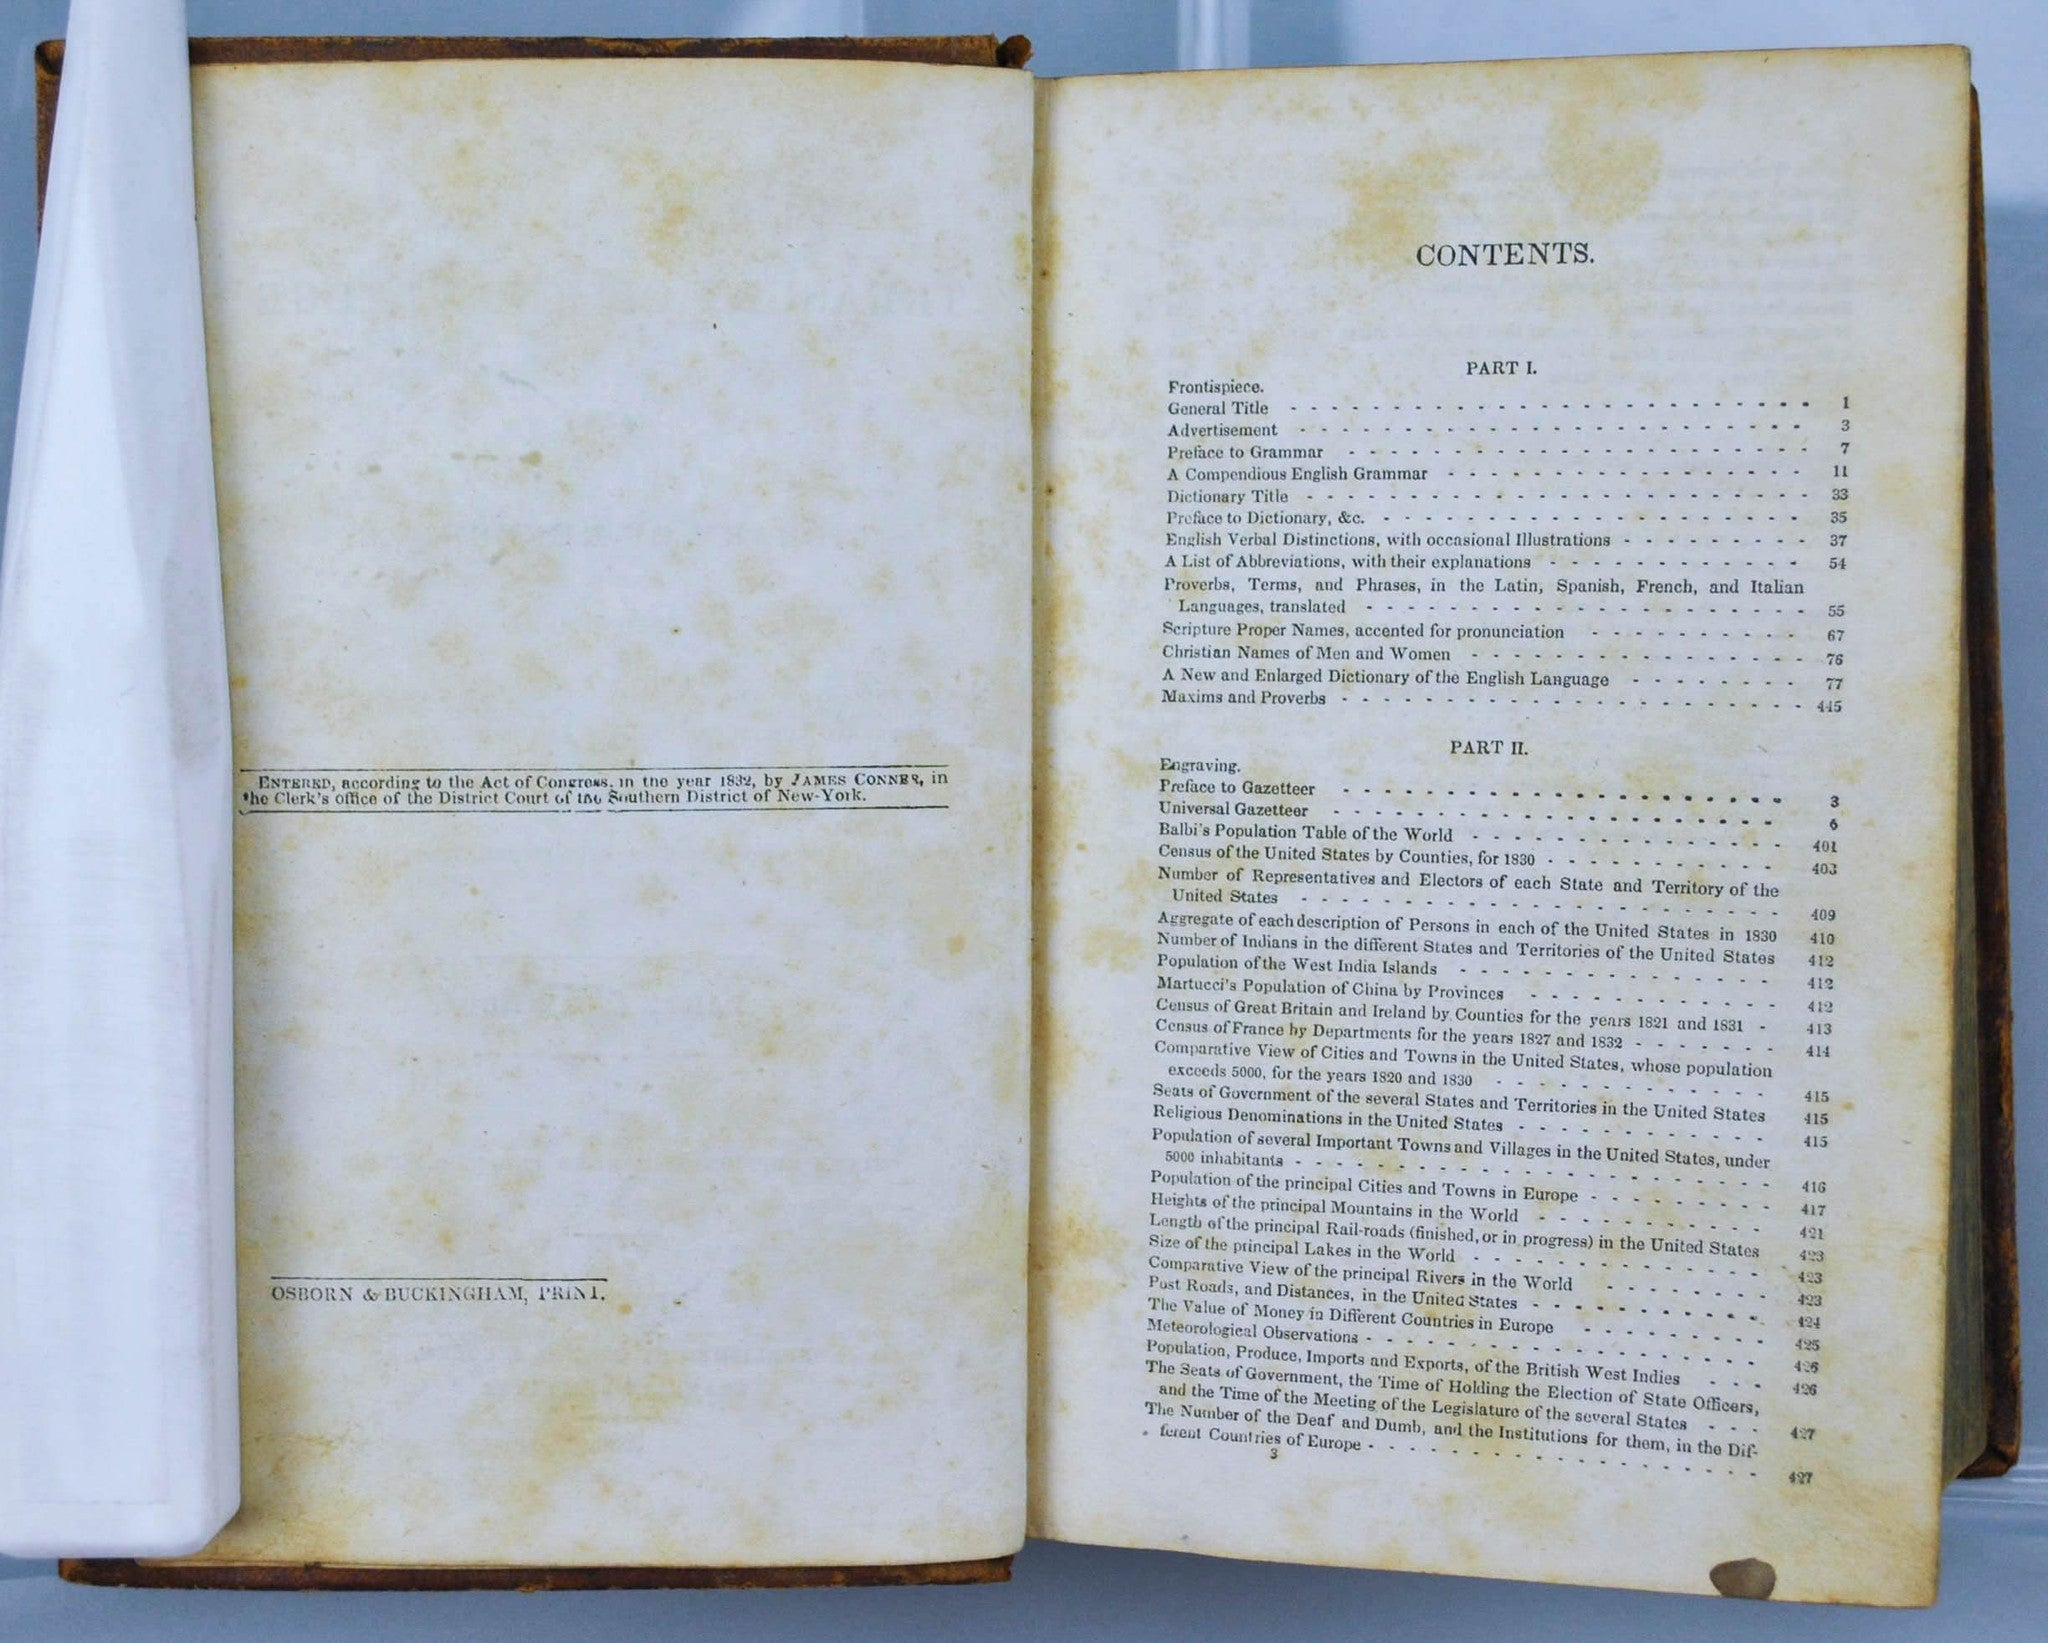 Treasury of Knowledge 1836 Containing early Gazetteer